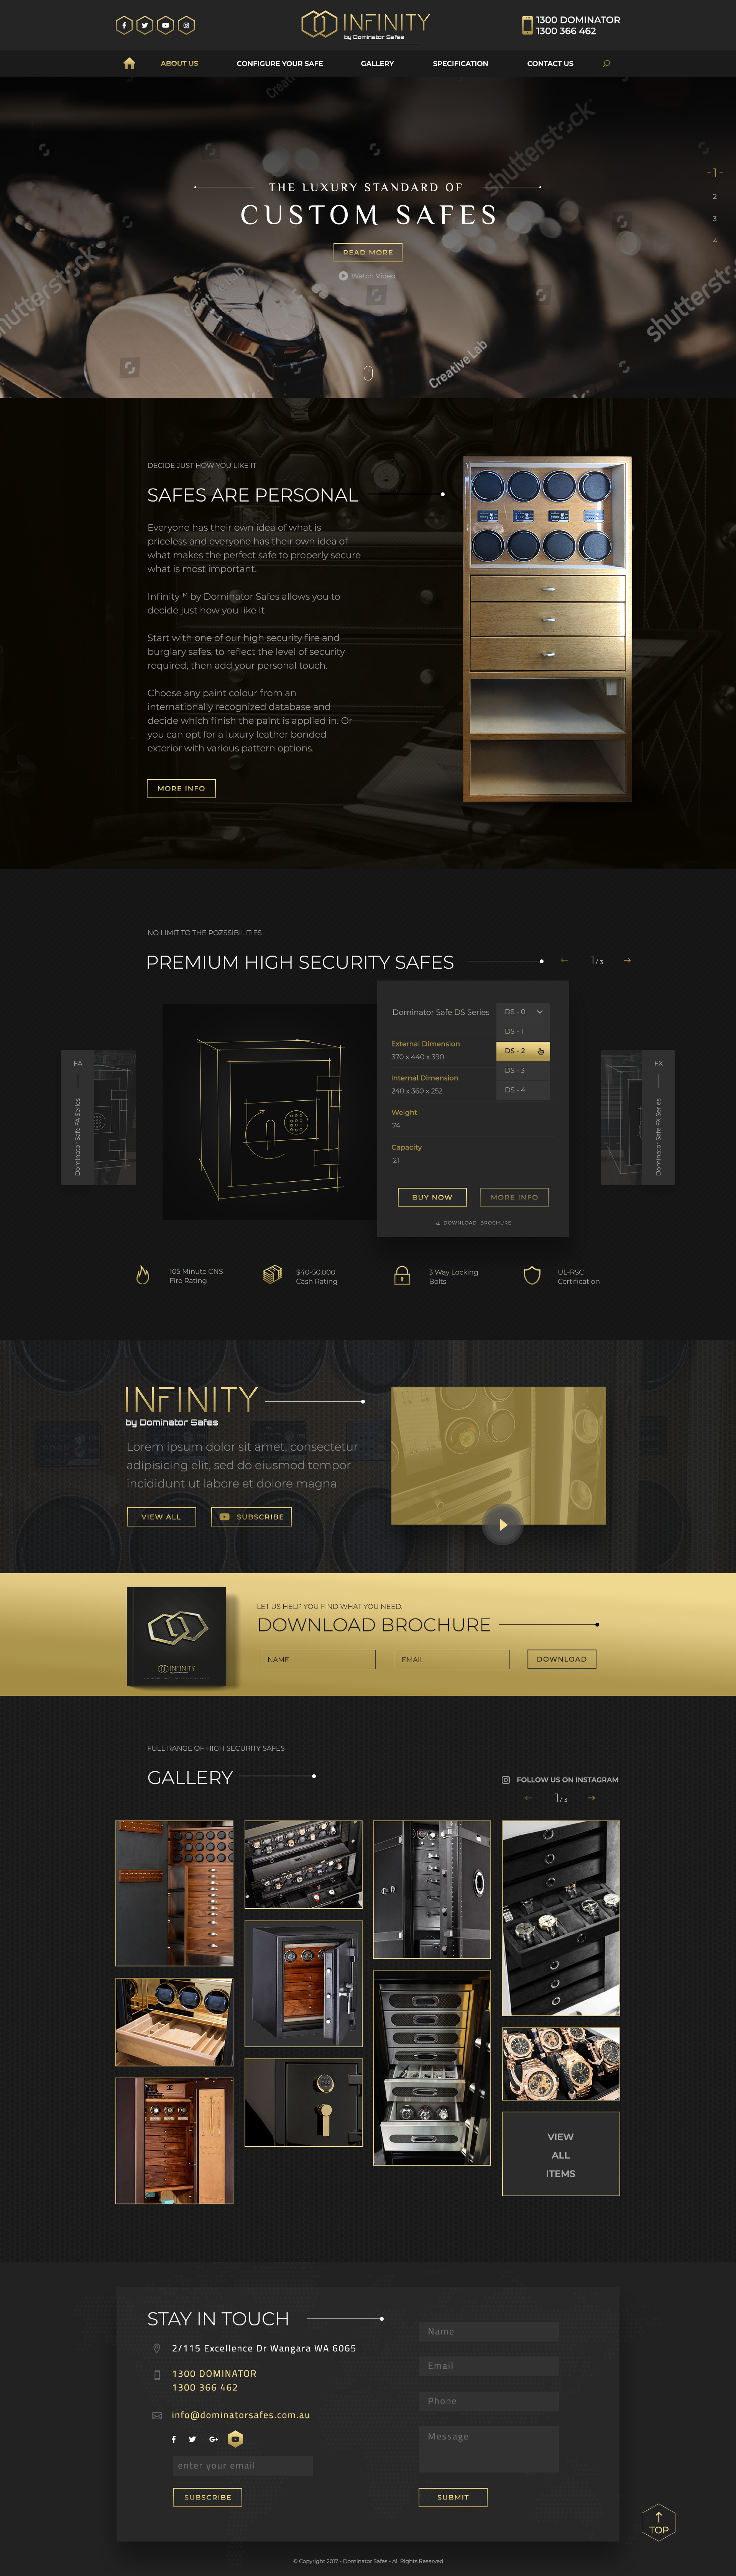 Design a High-End security products website